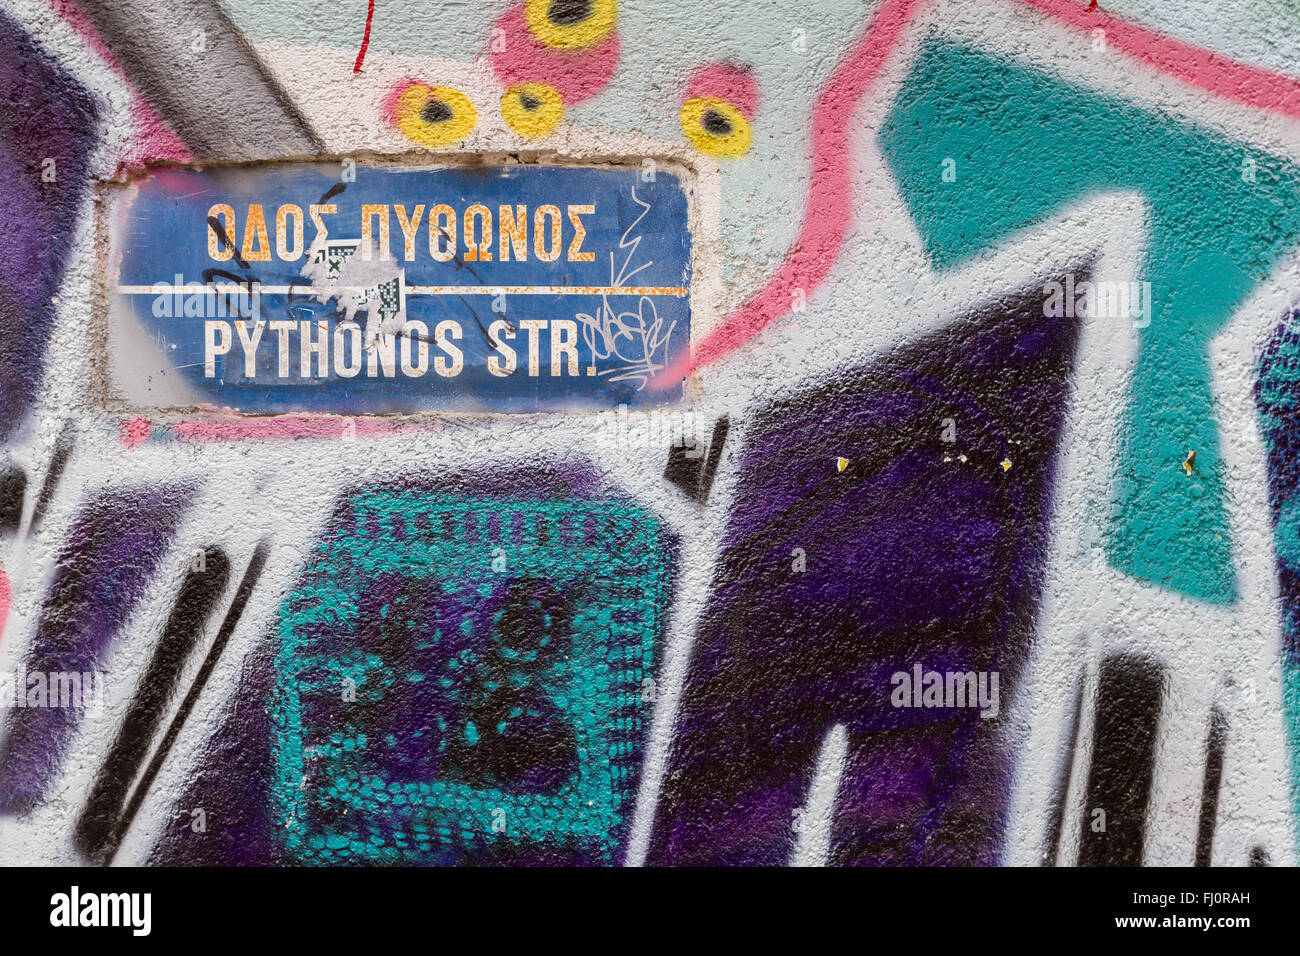 Nicosia, Cyprus - 18 February, 2016: Street Name Sign surrounded by Beautiful Street Art on Pythonos Street in Old - Stock Image